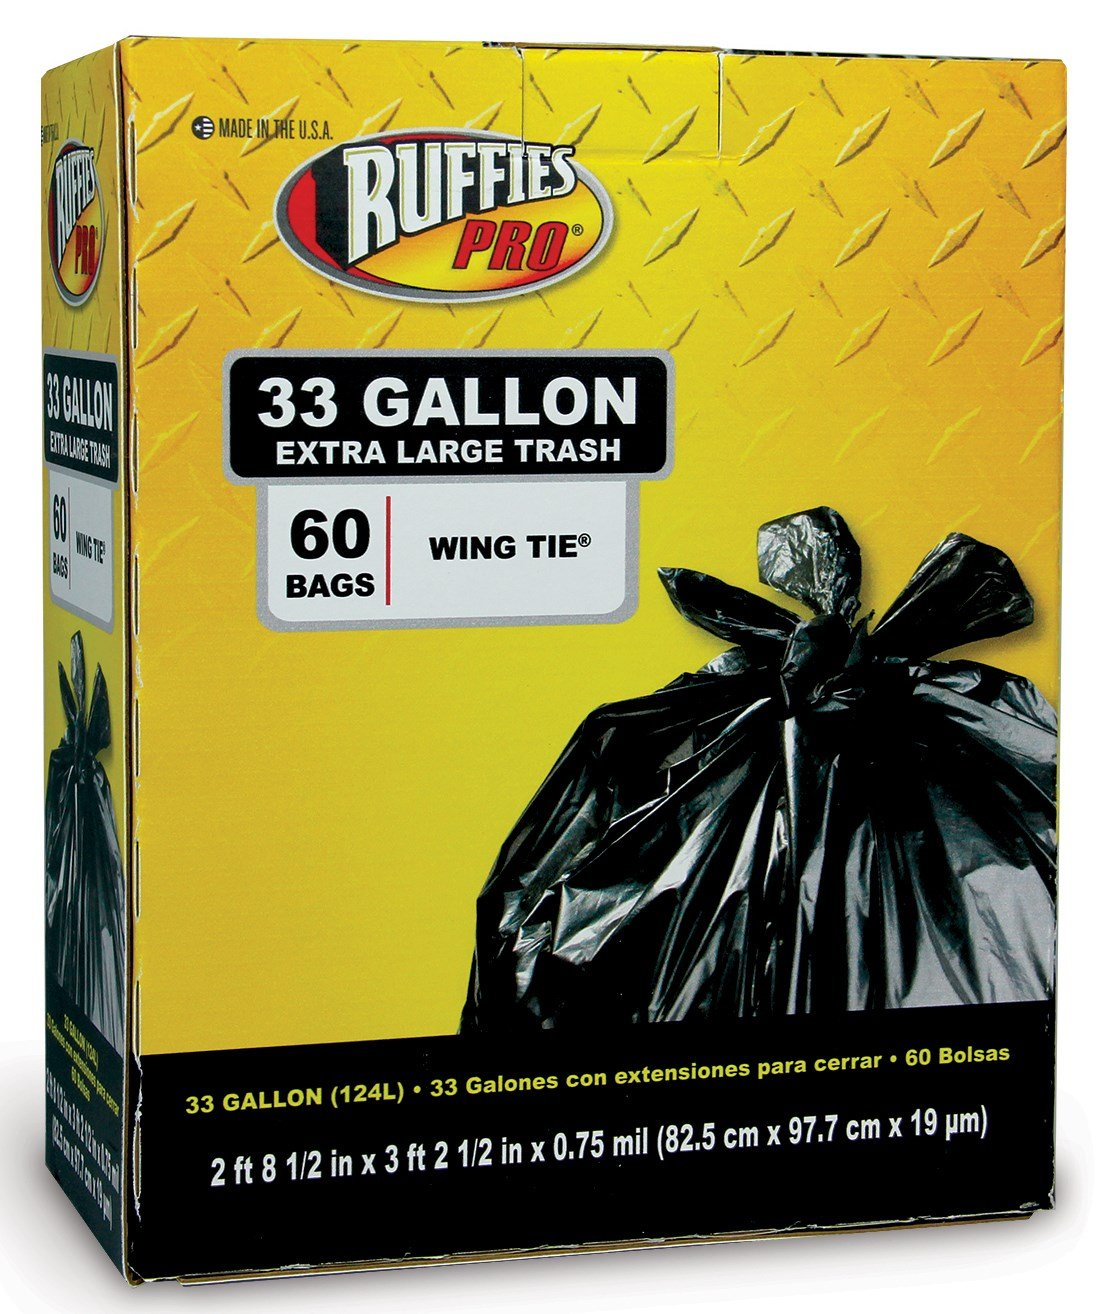 Ruffies Pro 1124904 33 Gallon Extra Large Black Trash Bags 60 Count by The Berry Company (Image #1)